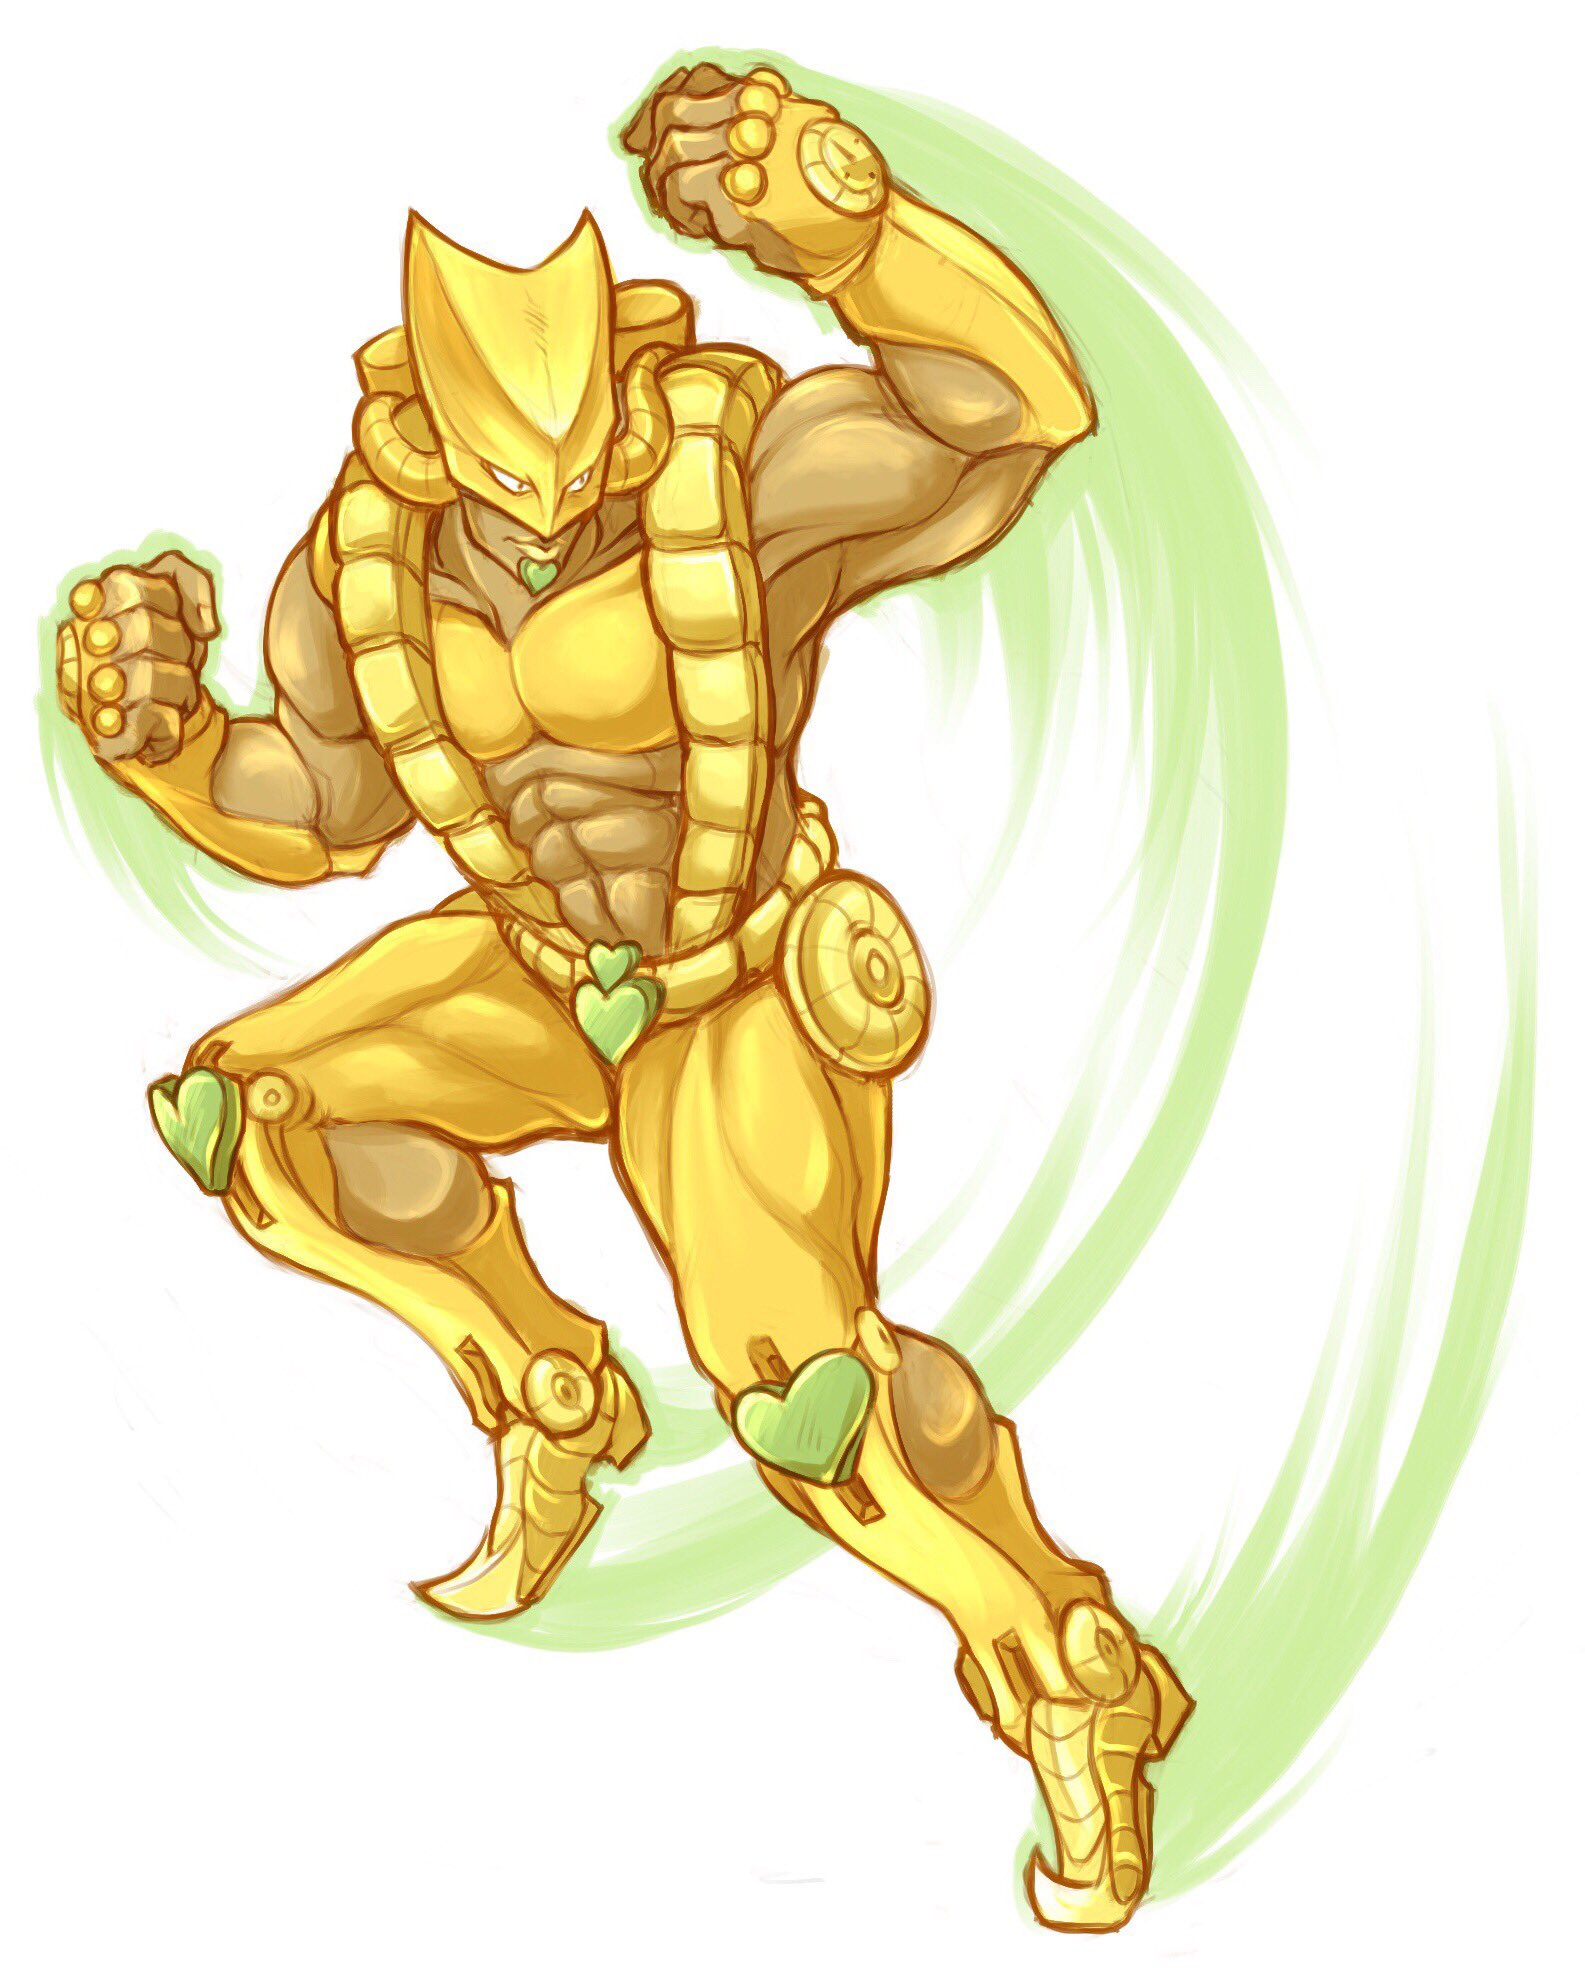 It took me drawing this to realize Dio\'s stand has tanks and.